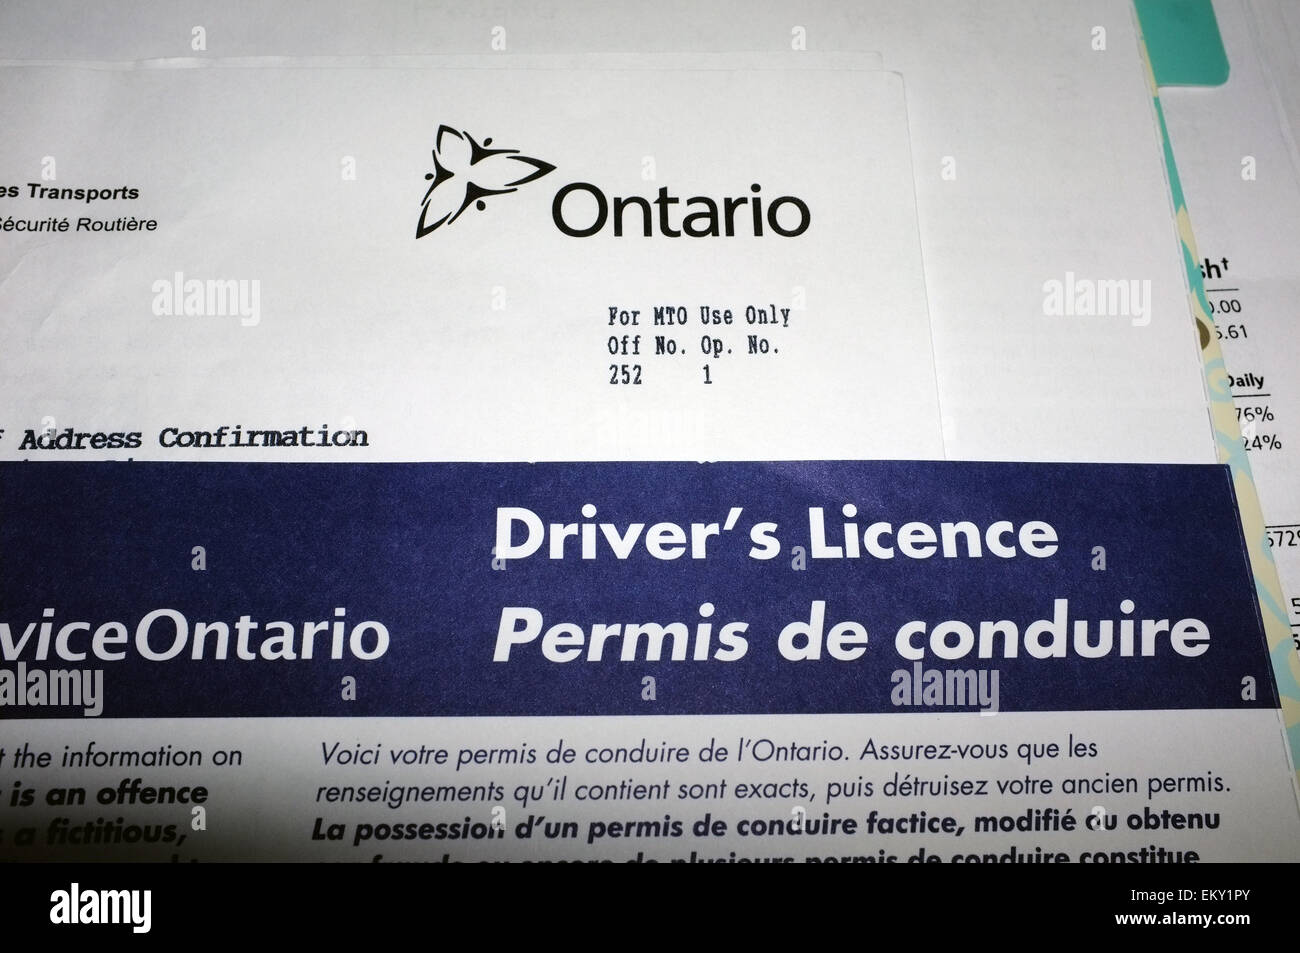 Ontario driver's license paperwork Stock Photo: 81114067 - Alamy